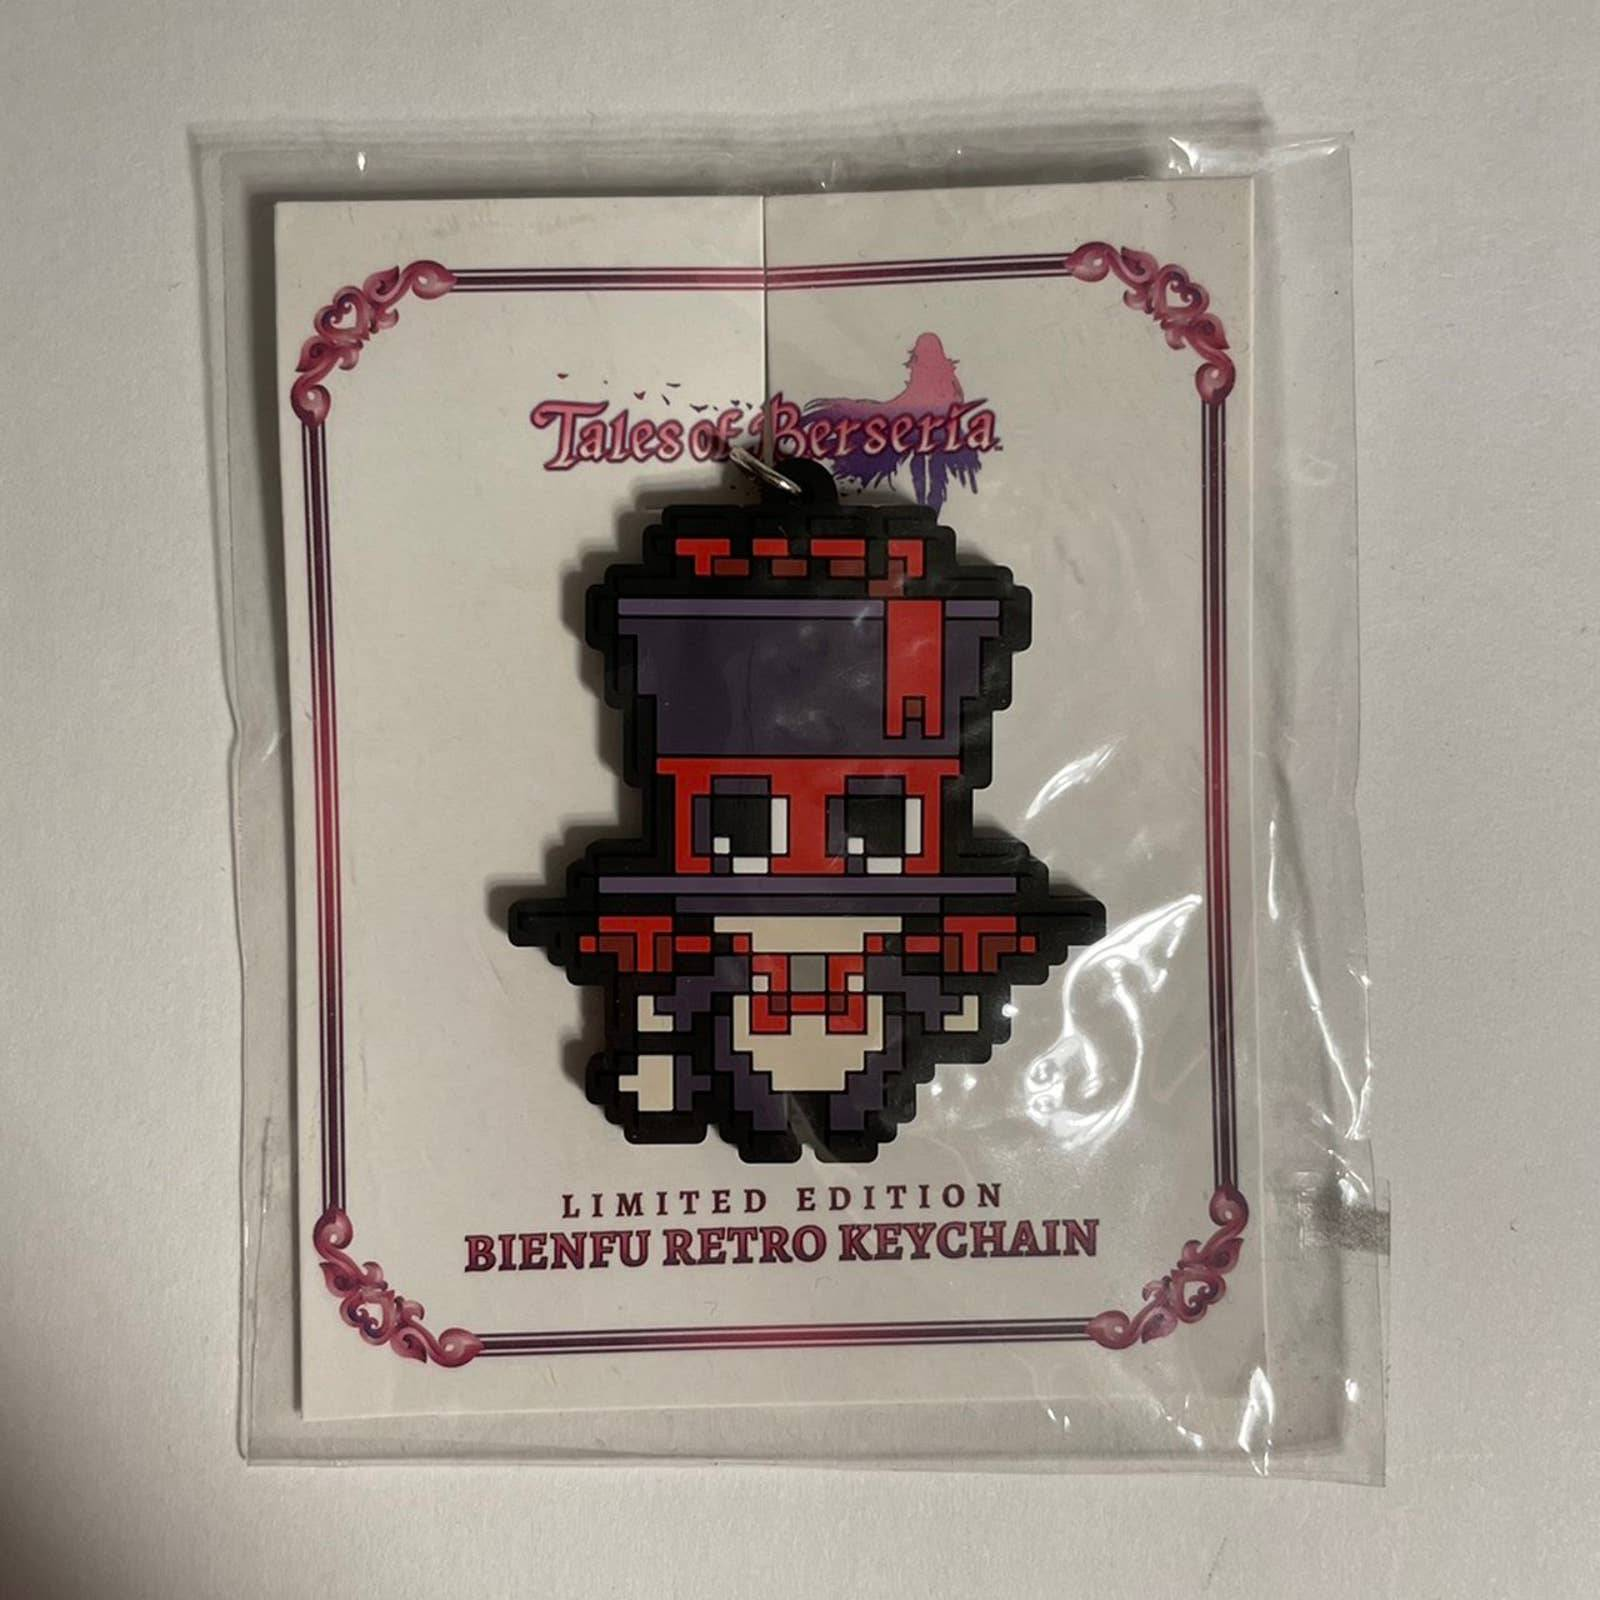 Tales of berseria keychain limited